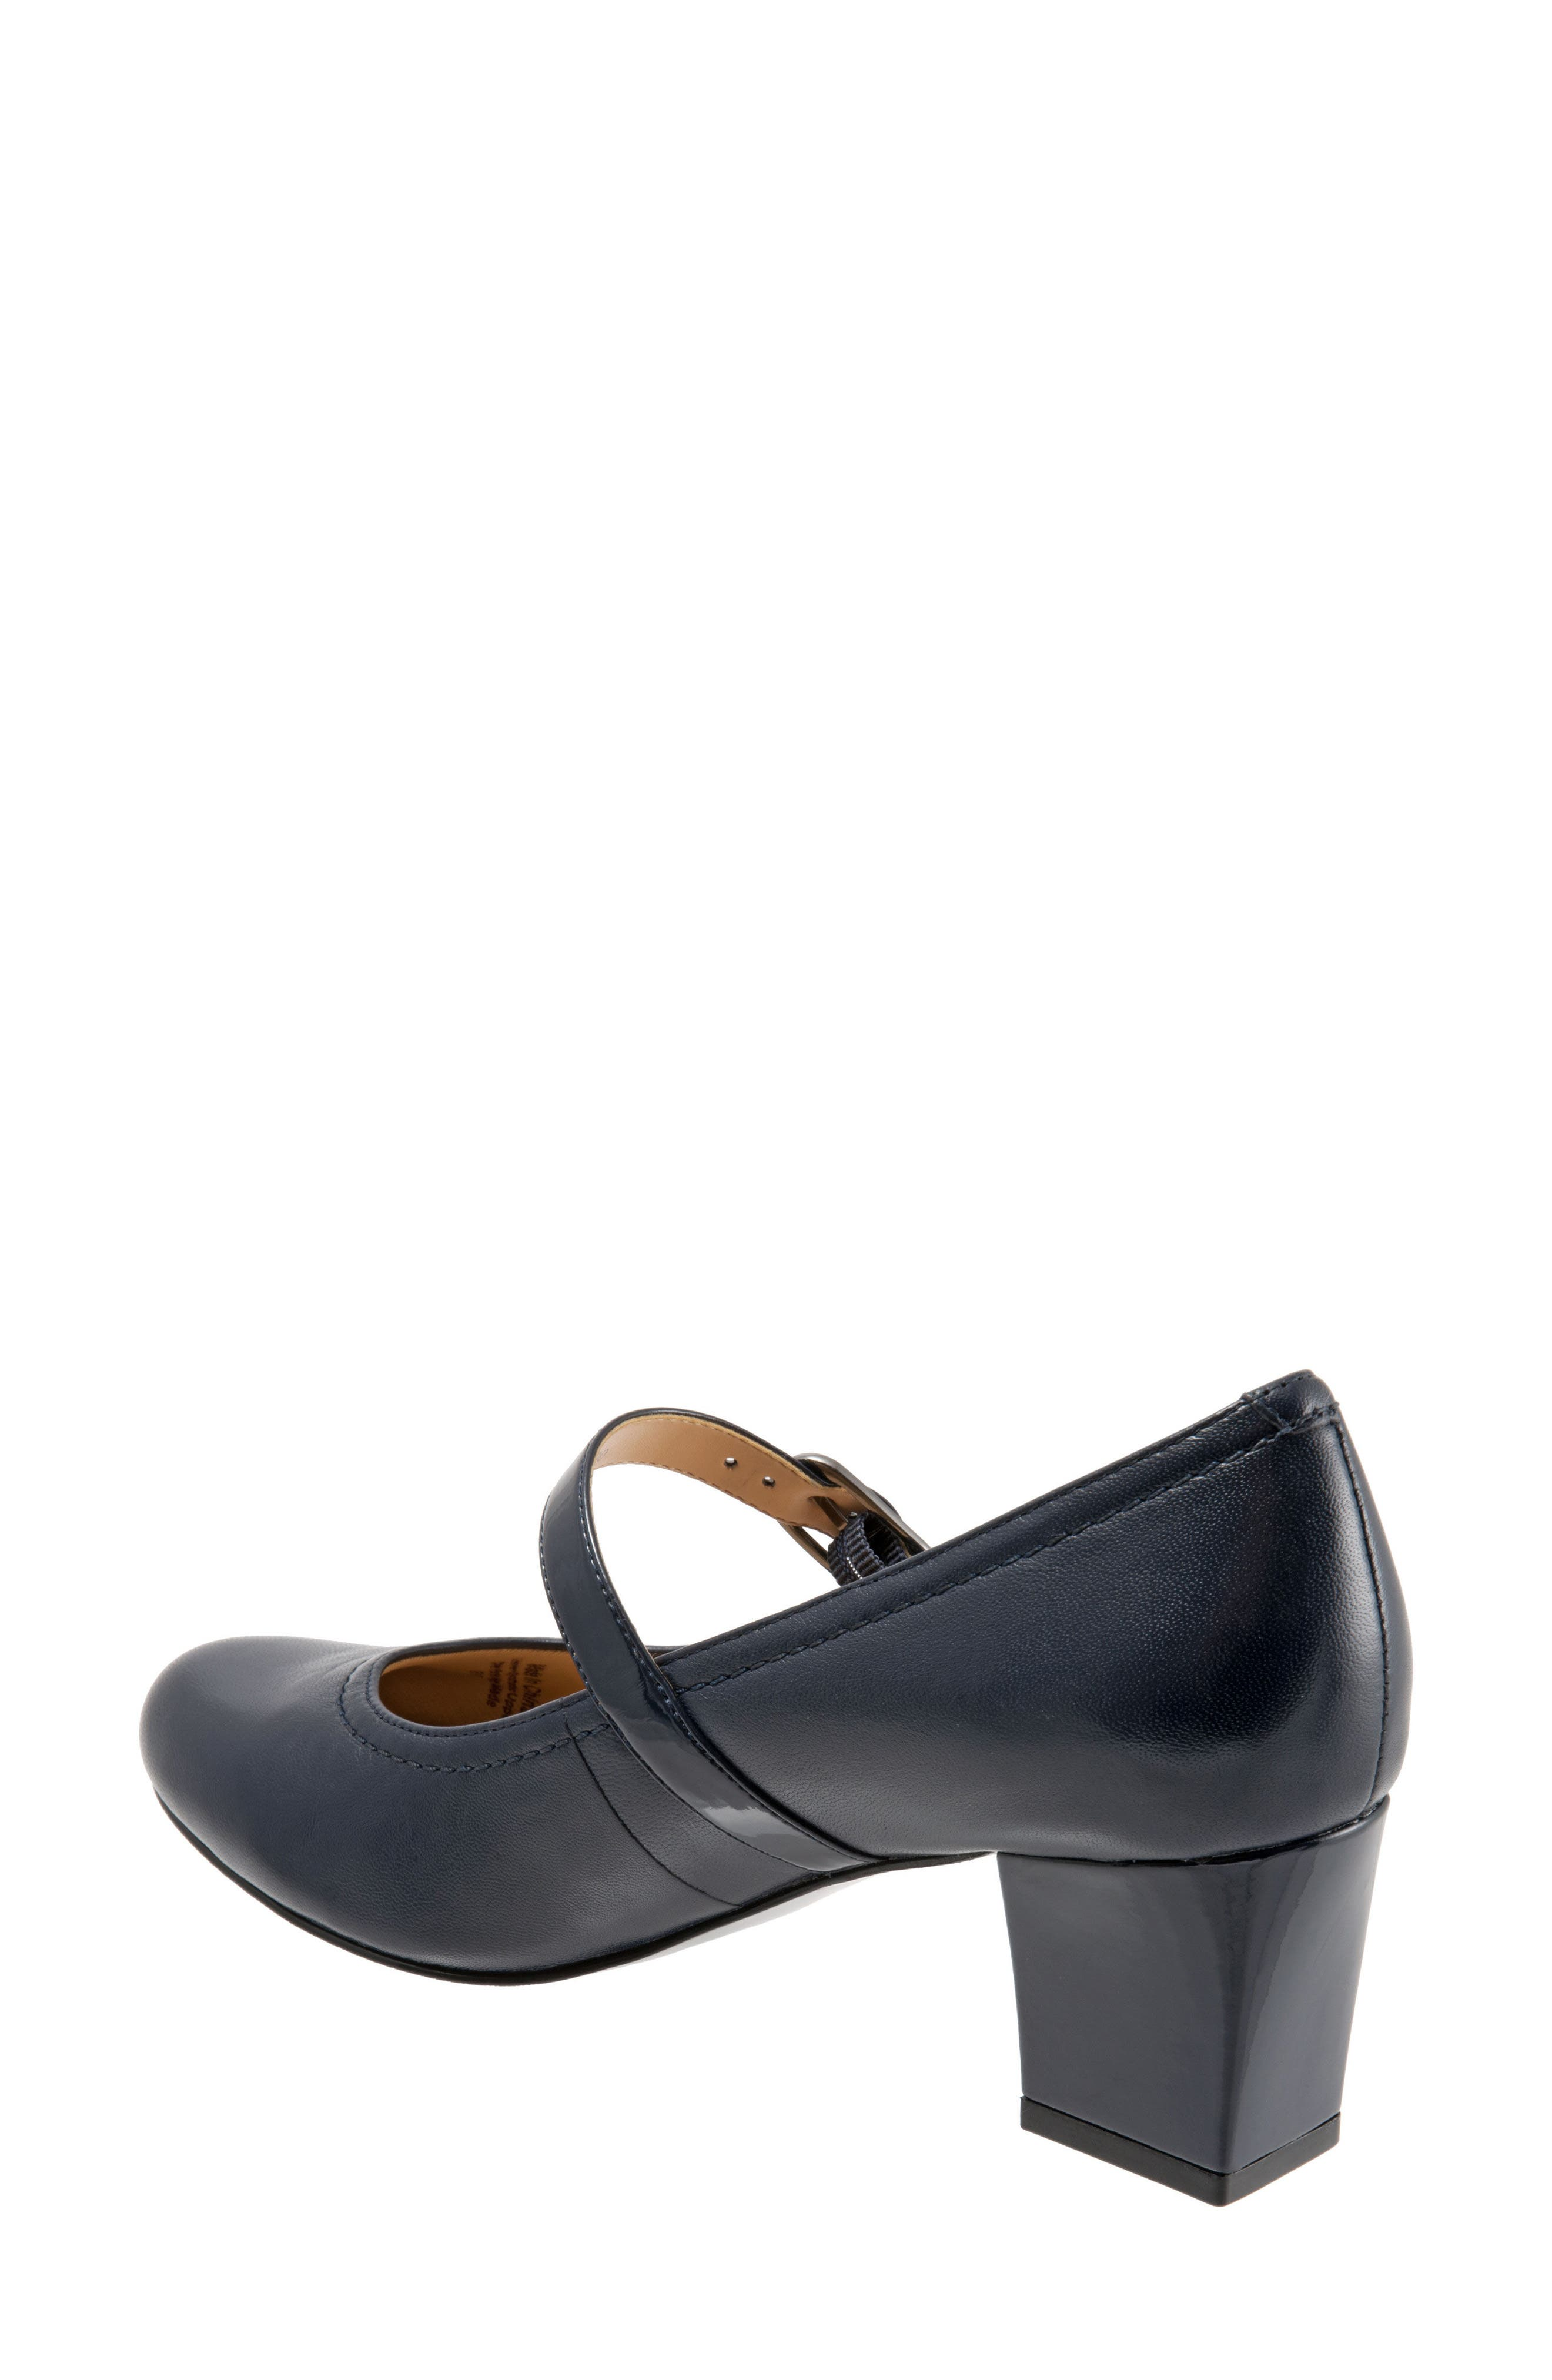 'Candice' Mary Jane Pump,                             Alternate thumbnail 2, color,                             NAVY LEATHER